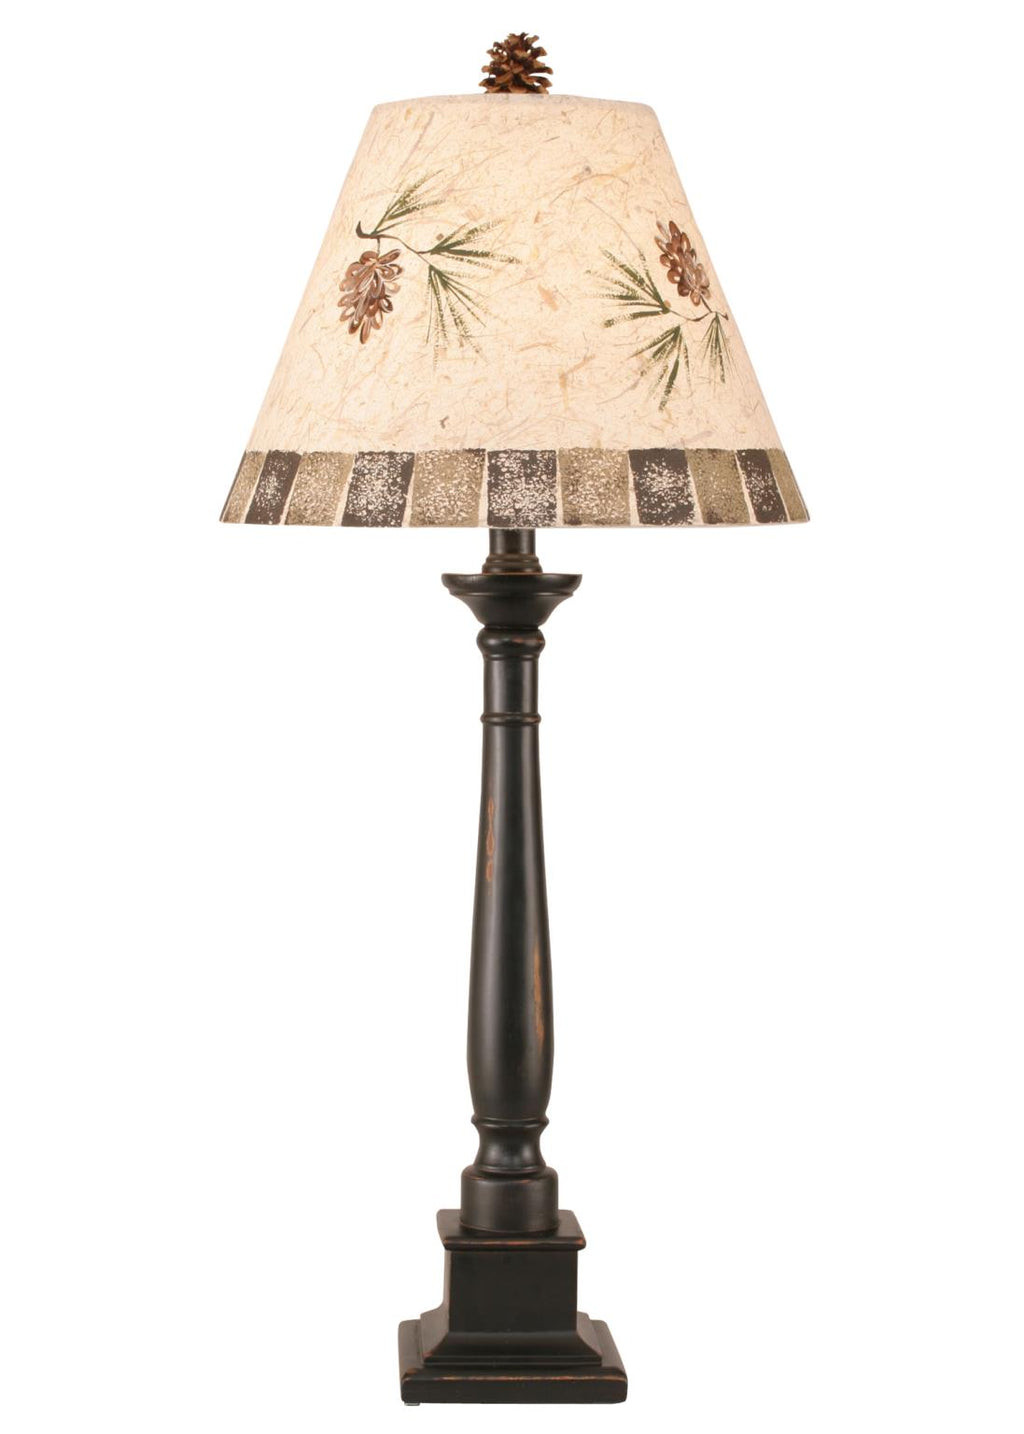 Distressed Black Square Candlestick Table Lamp w/ Pine Cone Shade